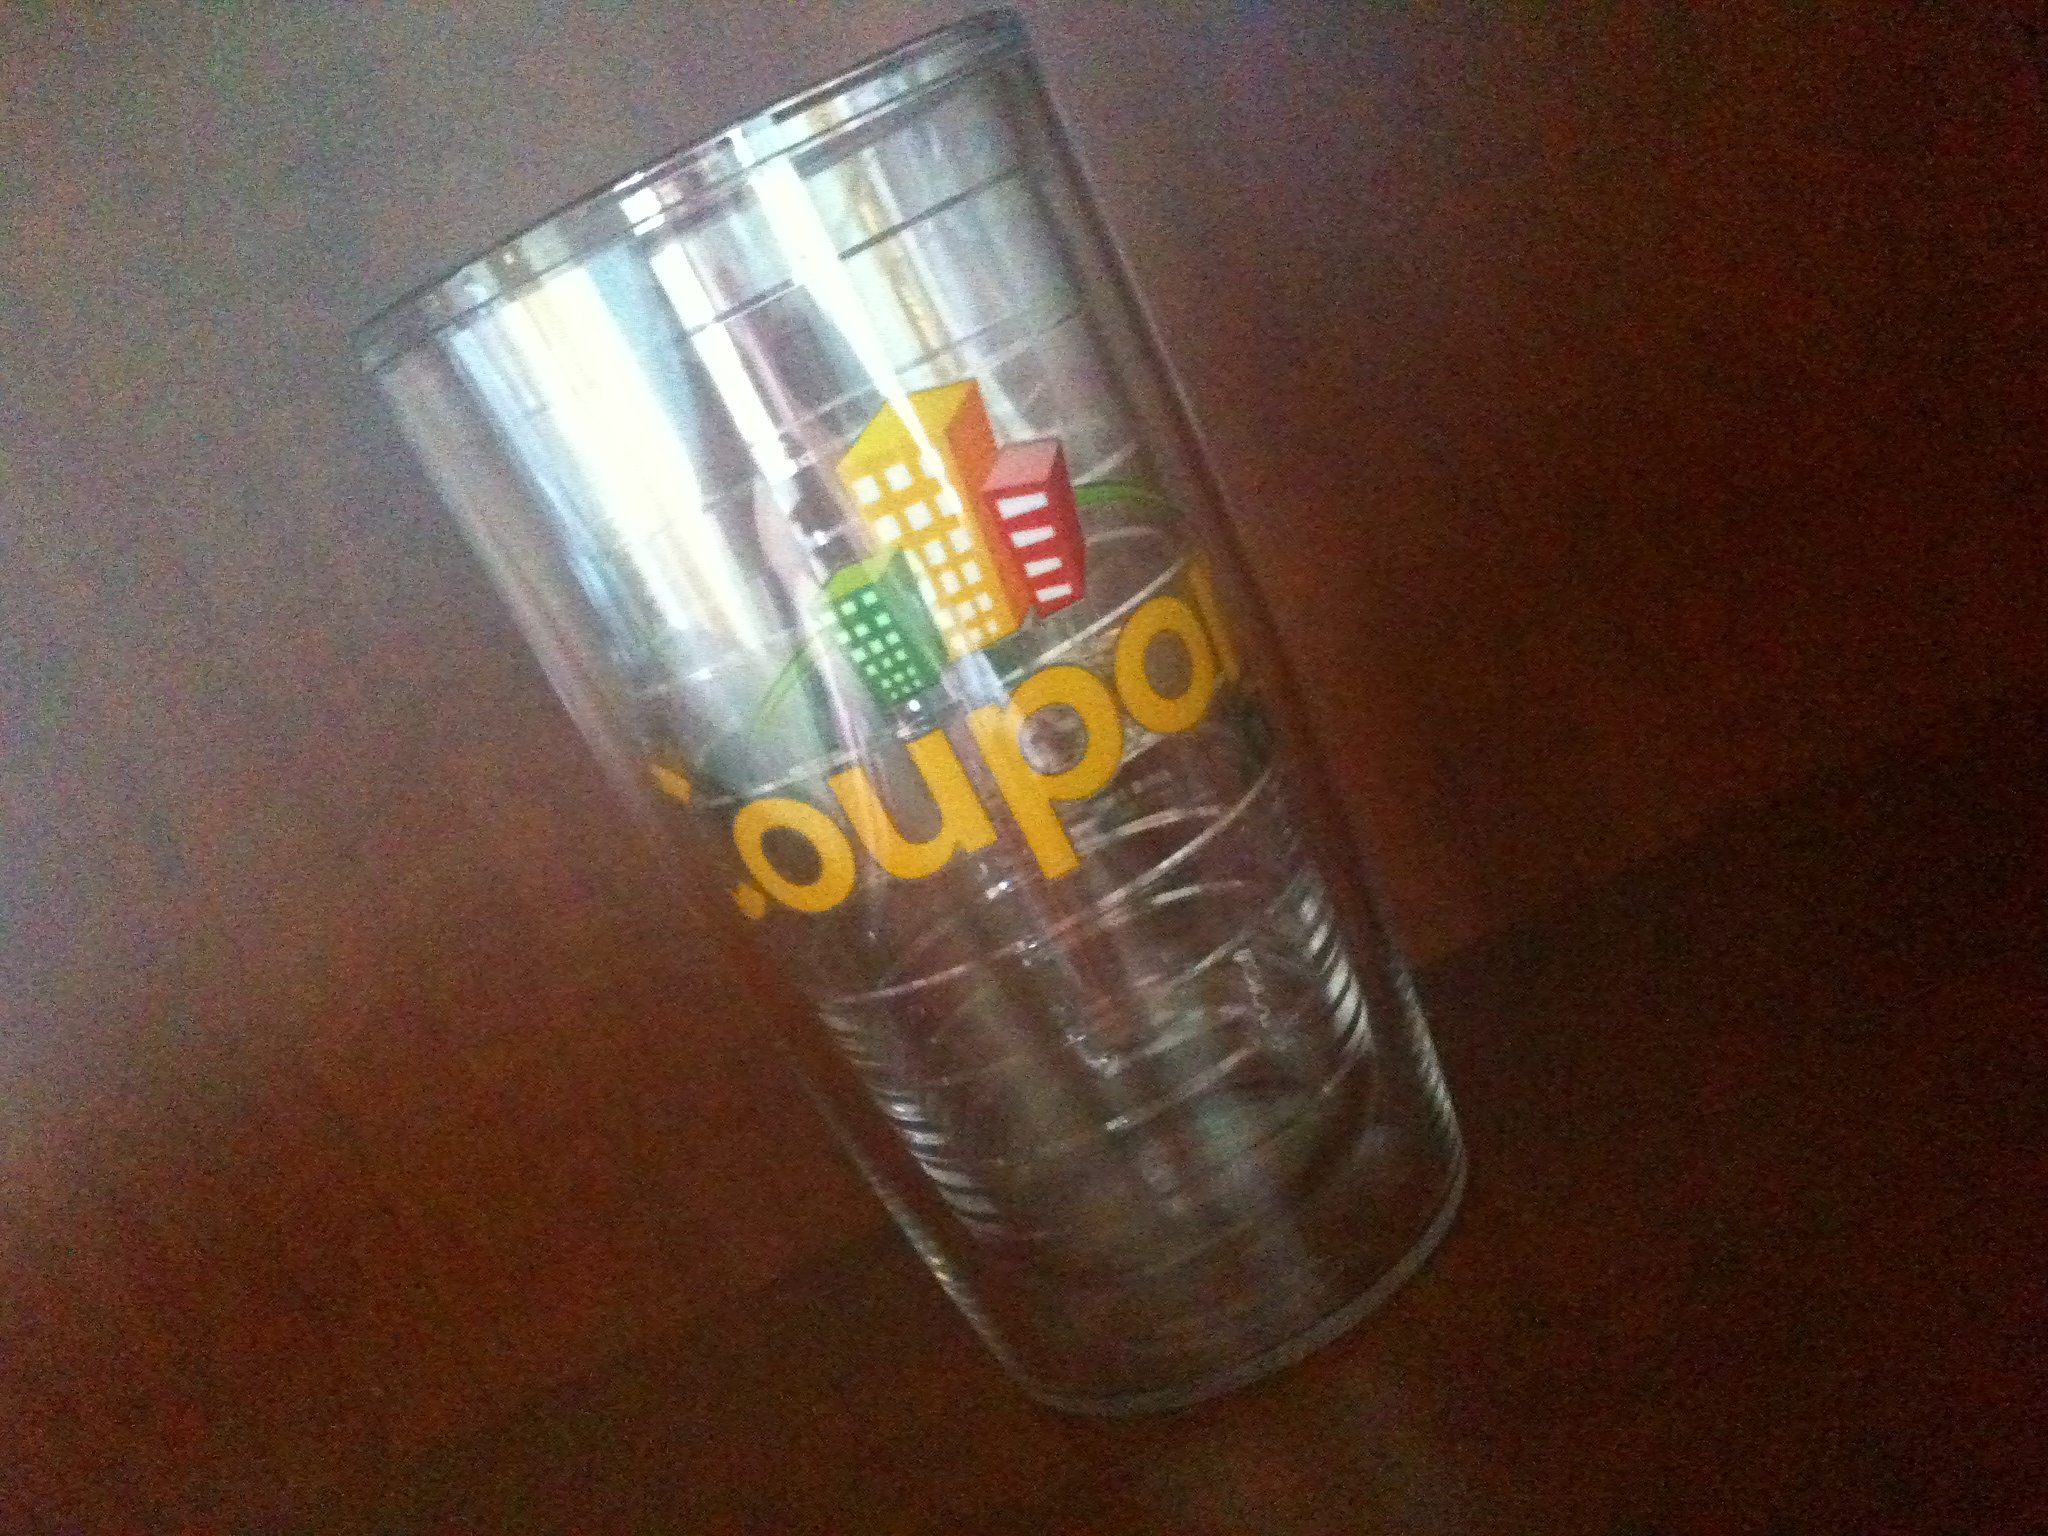 HotelCoupons.com Tervis tumbler